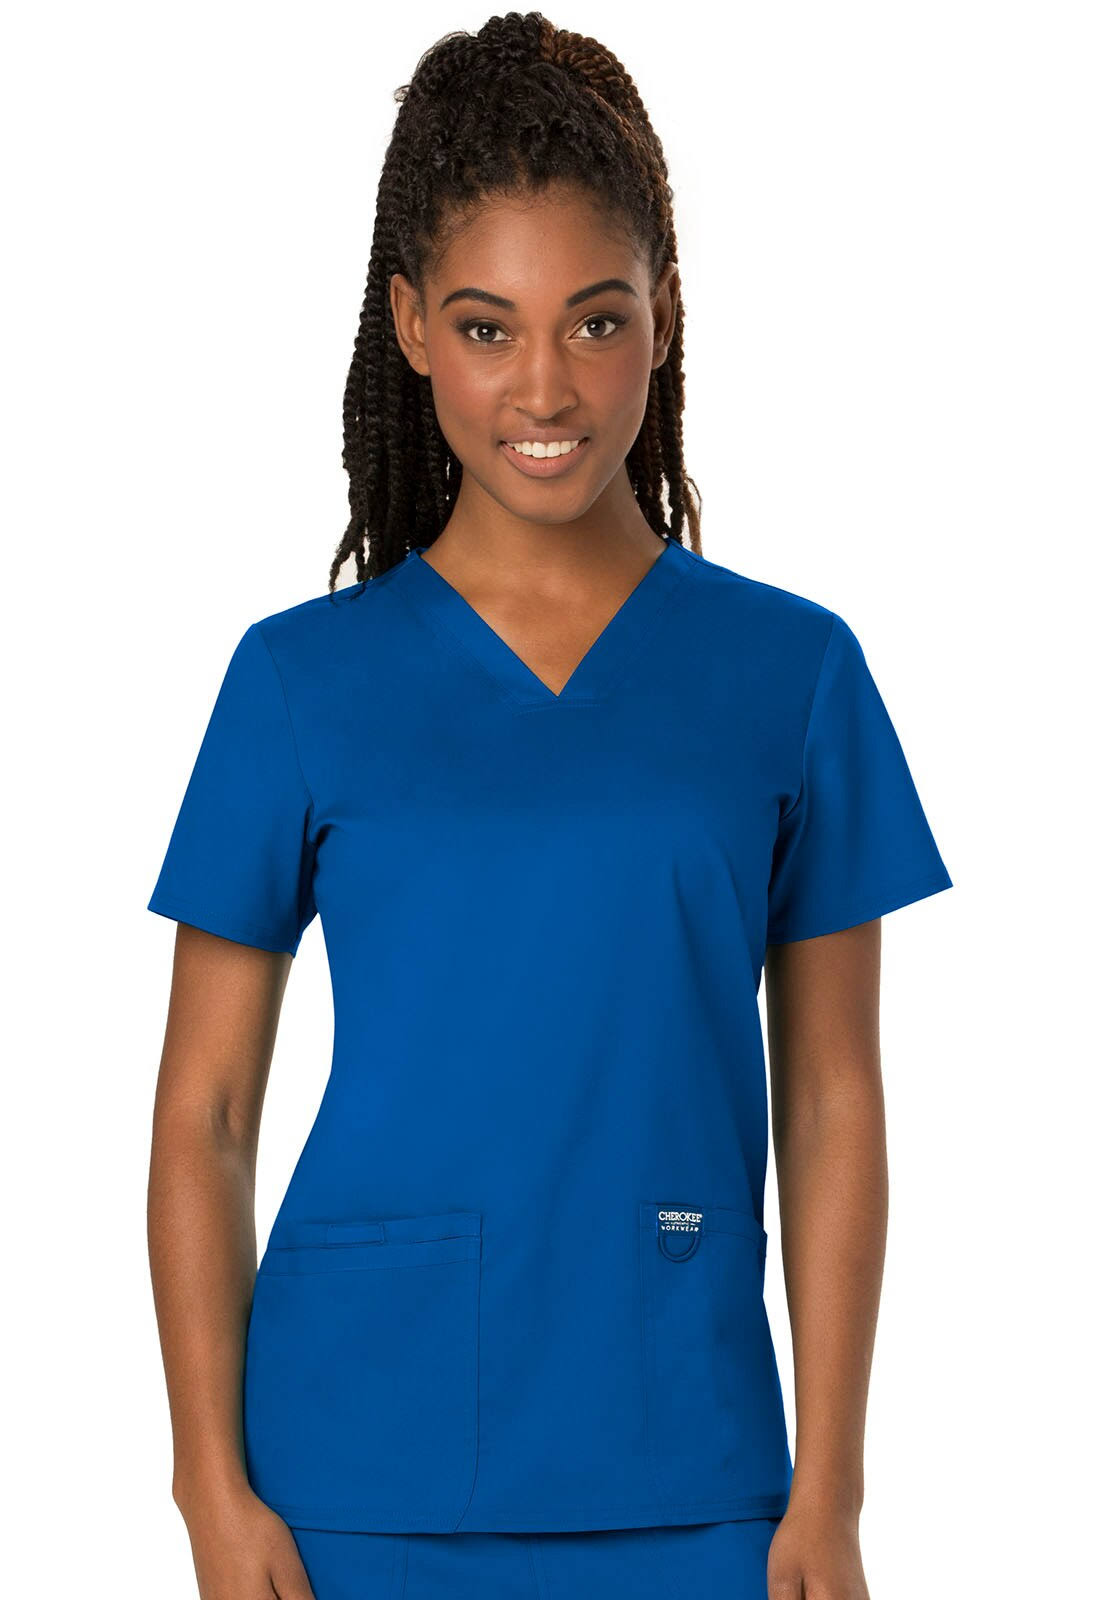 Cherokee Workwear Revolution V-Neck Scrub Top - XXS - Royal